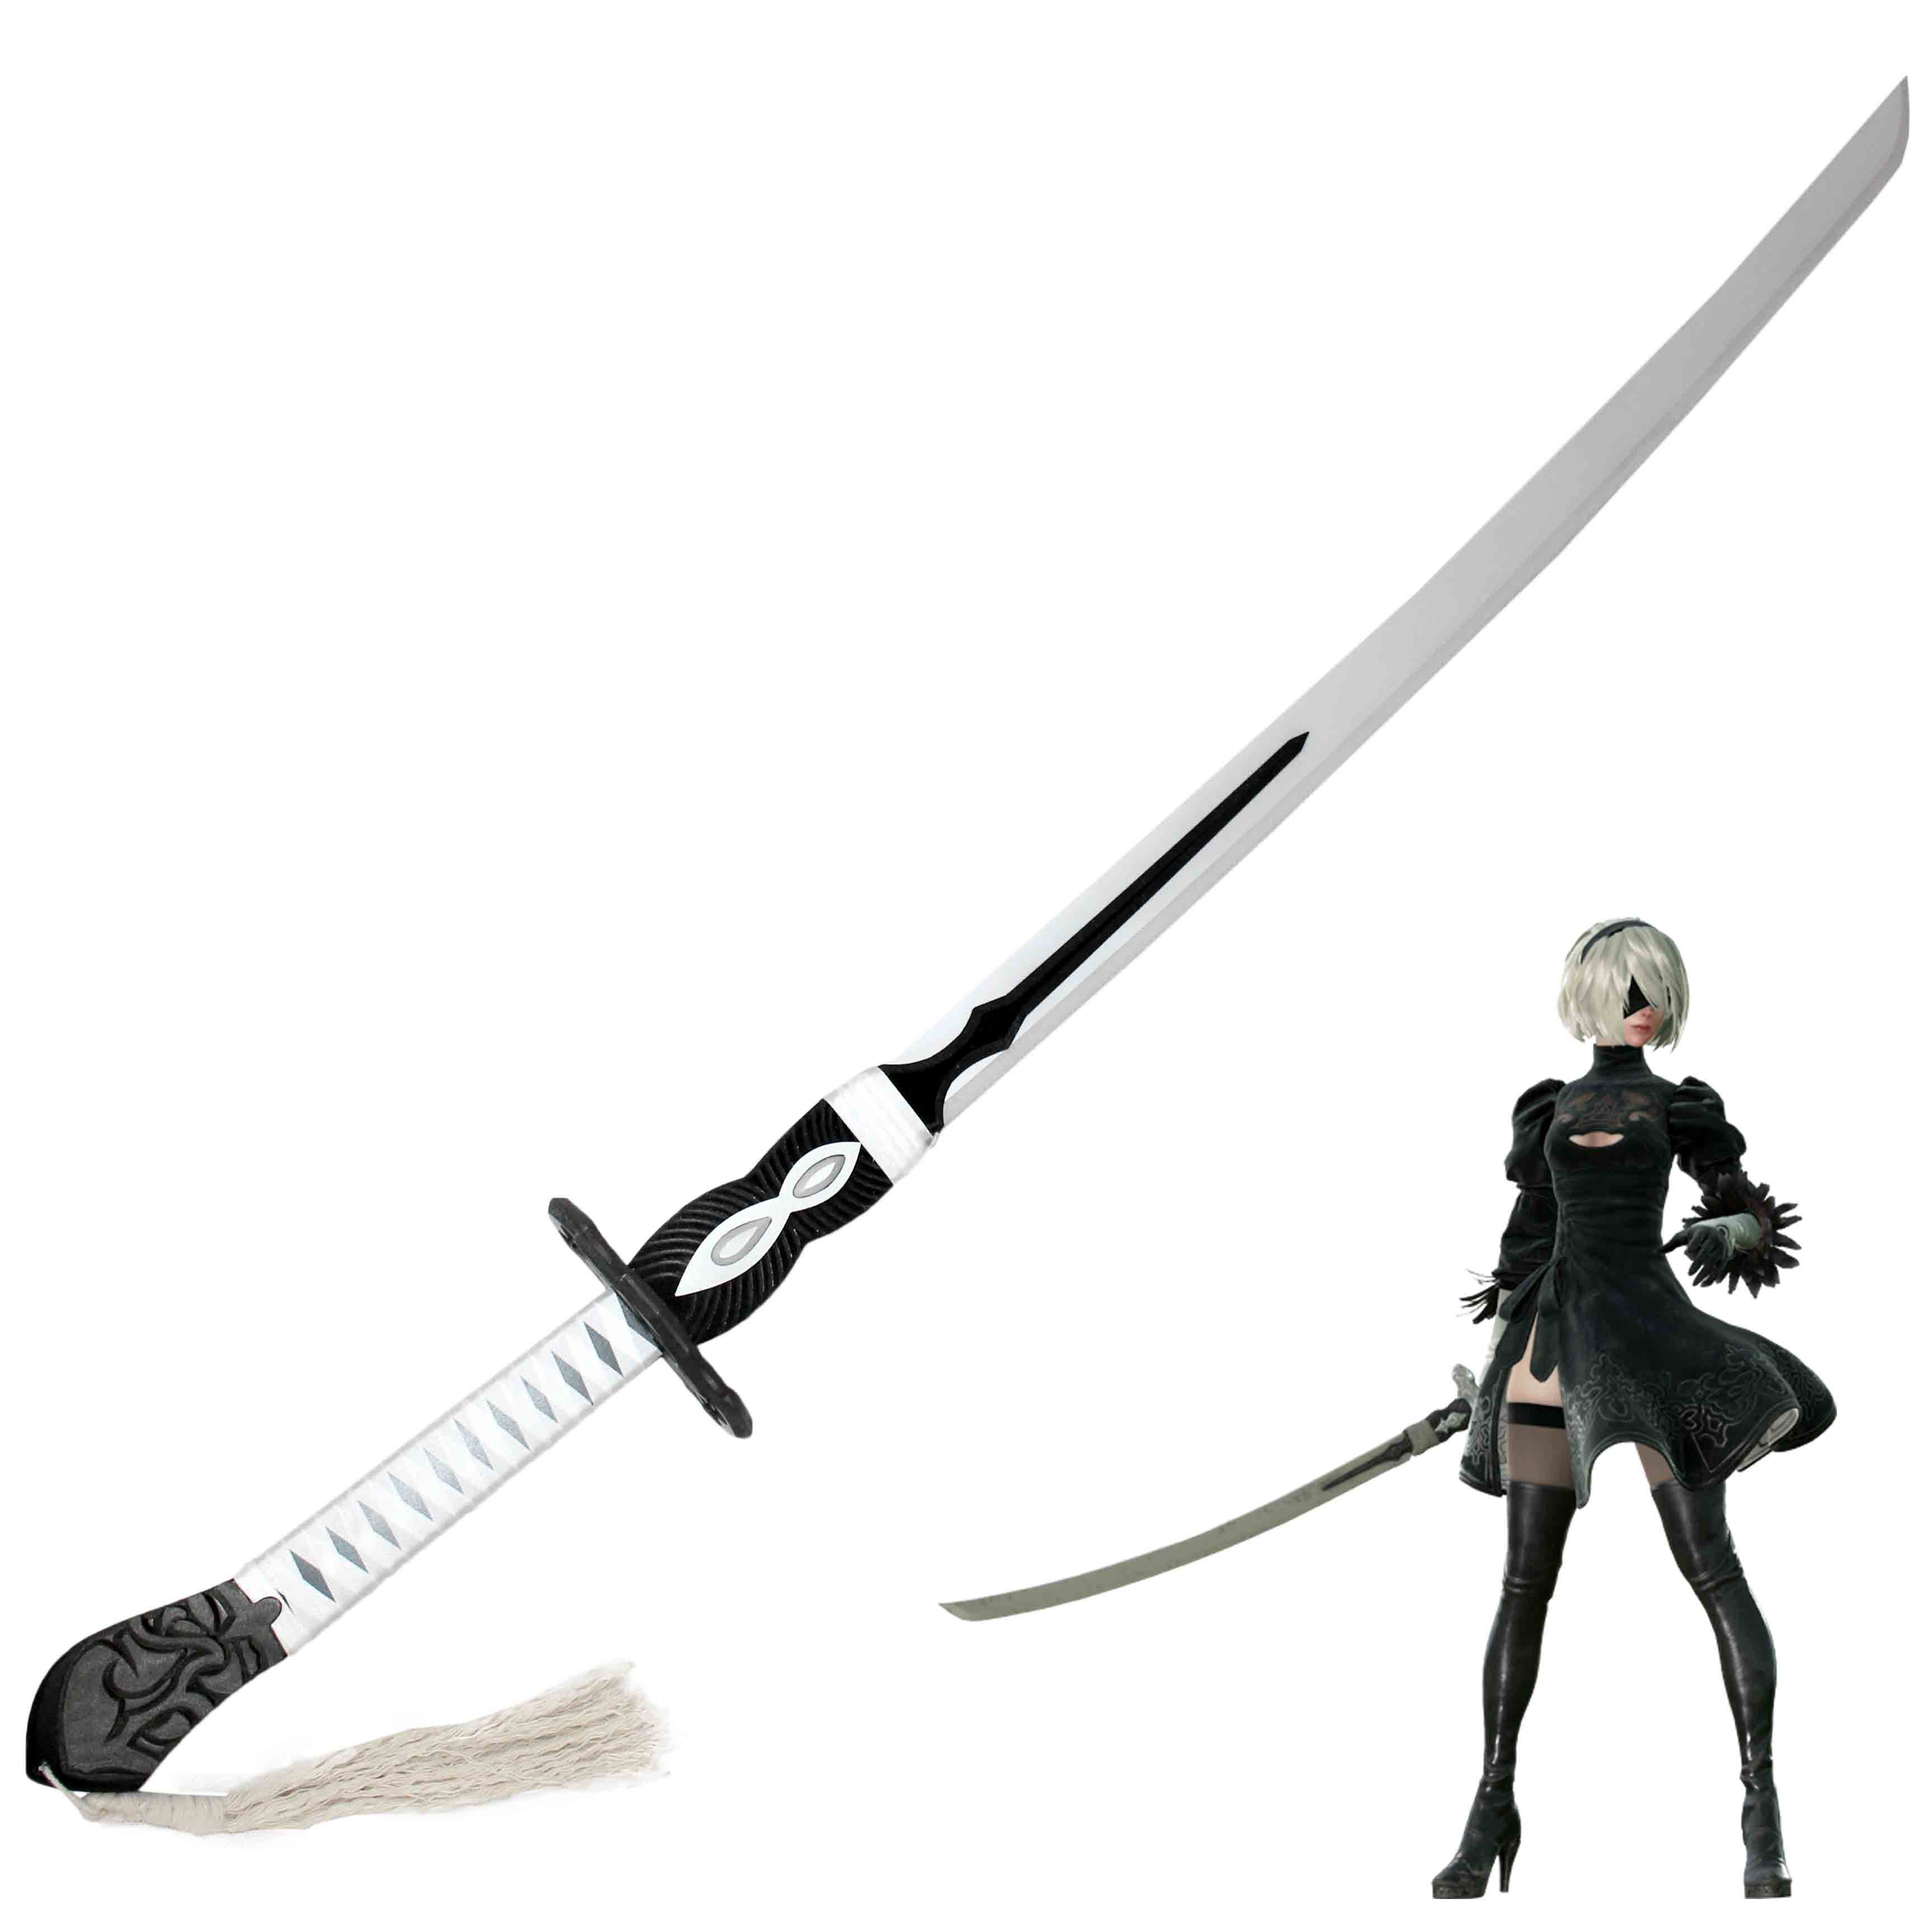 Nier automata yorha no 2 type b virtuous contract sword for B b contract